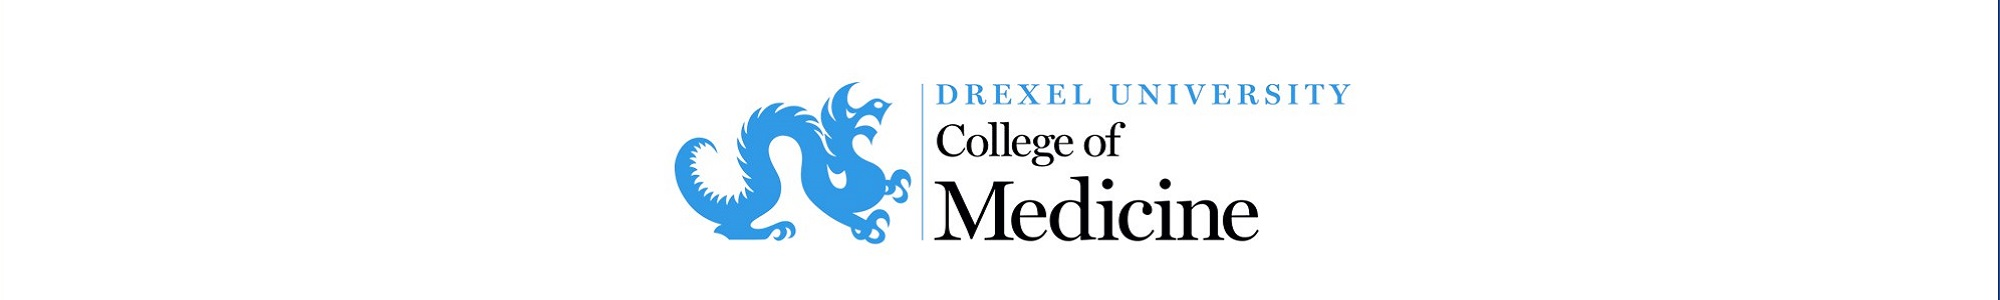 Drexel University College of Medicine